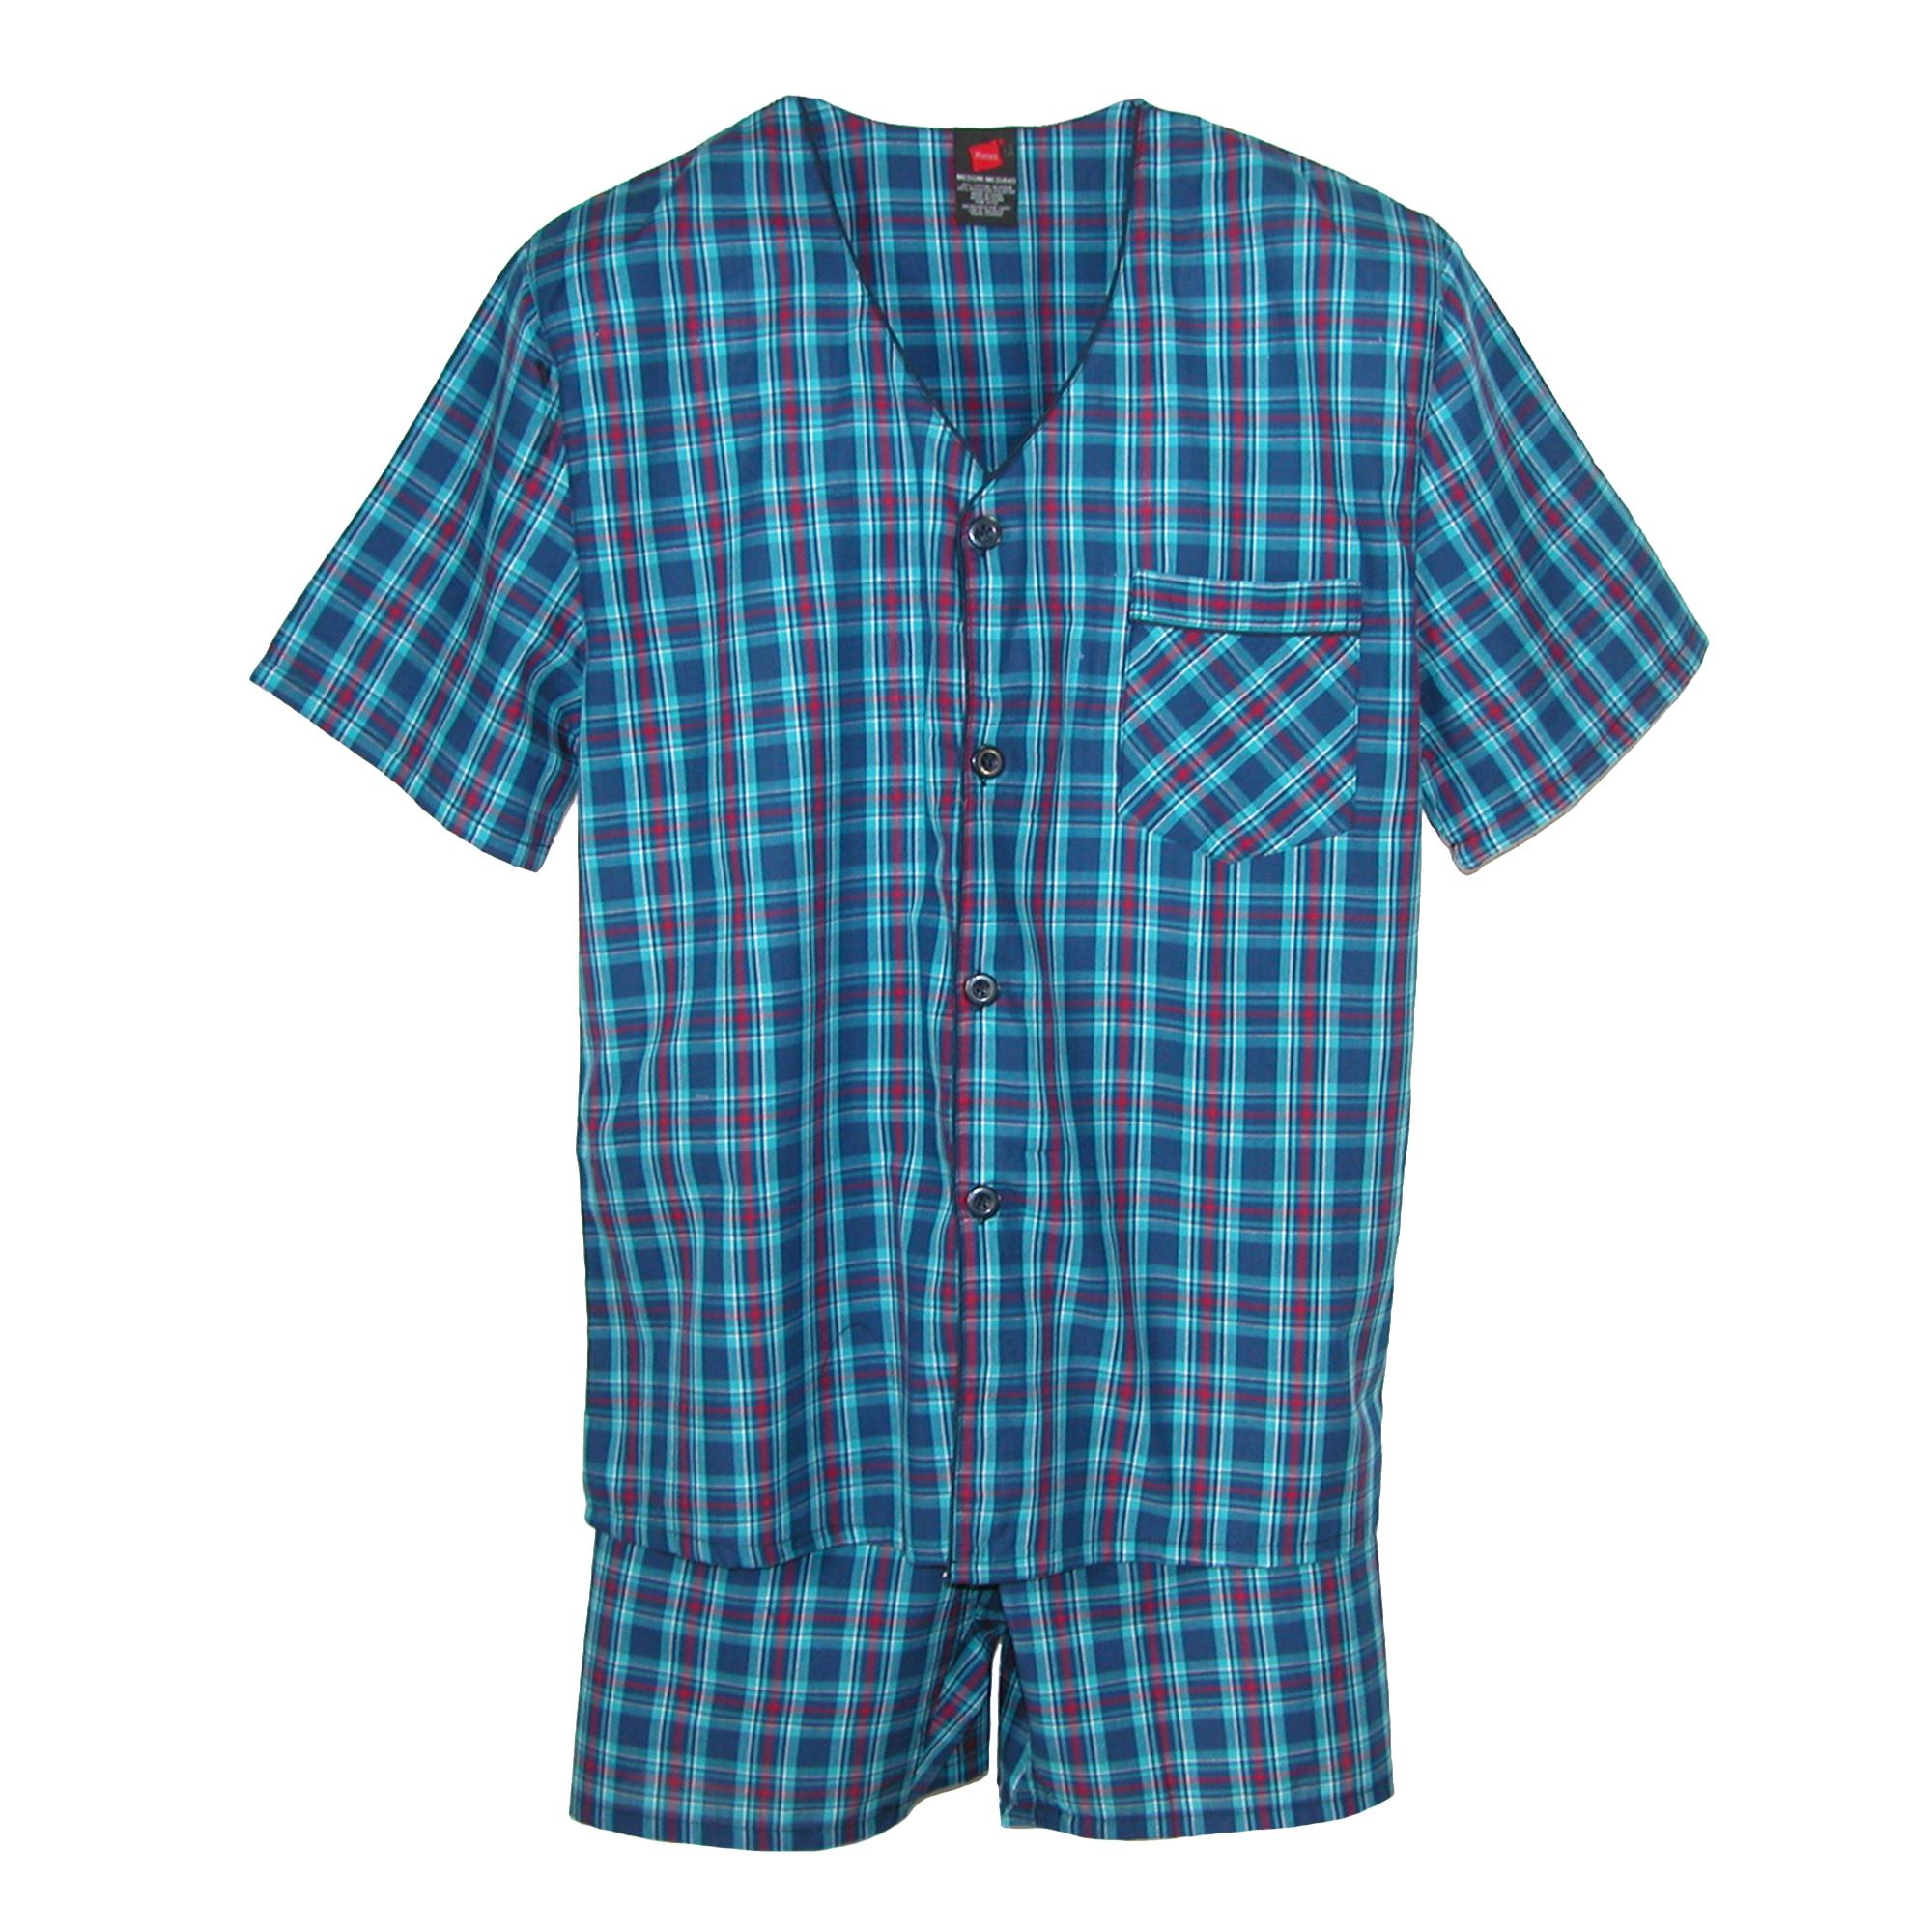 Best Sellers in Men's Pajama Sets #1. Essentials by Seven Apparel Men's Long-Sleeve Top and Fleece Bottom Pajama Set out of 5 stars $ - $ TONY AND CANDICE Men's Short Sleeve Satin Pajama Set with Shorts out of 5 stars $ - $ # Alexander Del Rossa Mens Cotton Solid Pajamas, Long Woven Pj Set